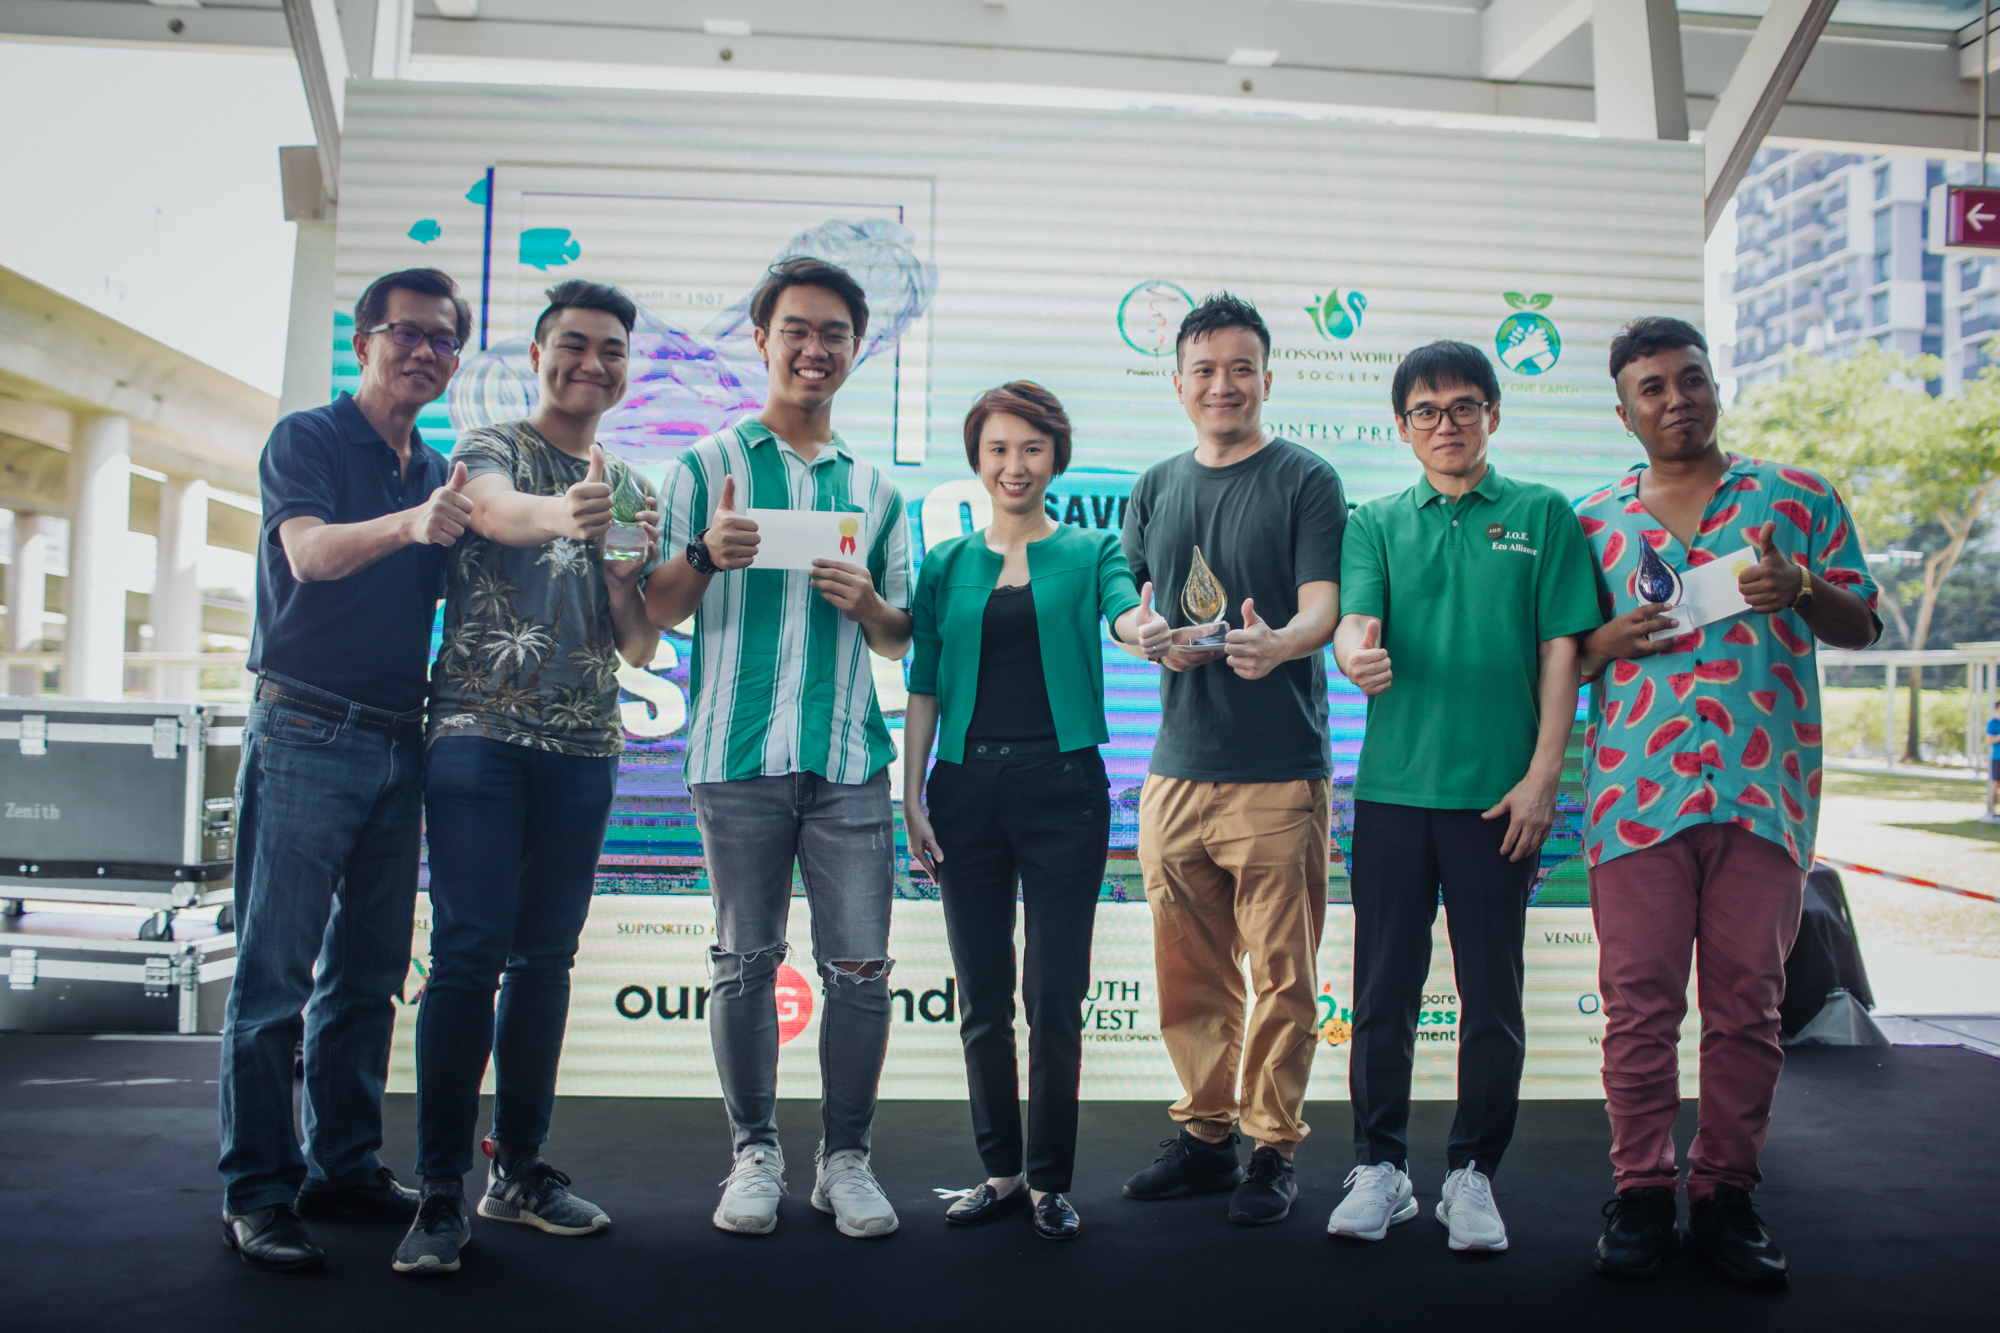 From left to right  Mr Daren Ong  (President of Blossom World Society),  Andrew Toh & Ryan Aw  (3rd place),  Ms Low Yen Ling  (Mayor of South West District),  Chen Lidi  (1st place) and  Mr Ogawa Joe  ( President of J.O.E Eco Alliance),  Muhammad Hazrulnizam Bin Azman  (2nd place)